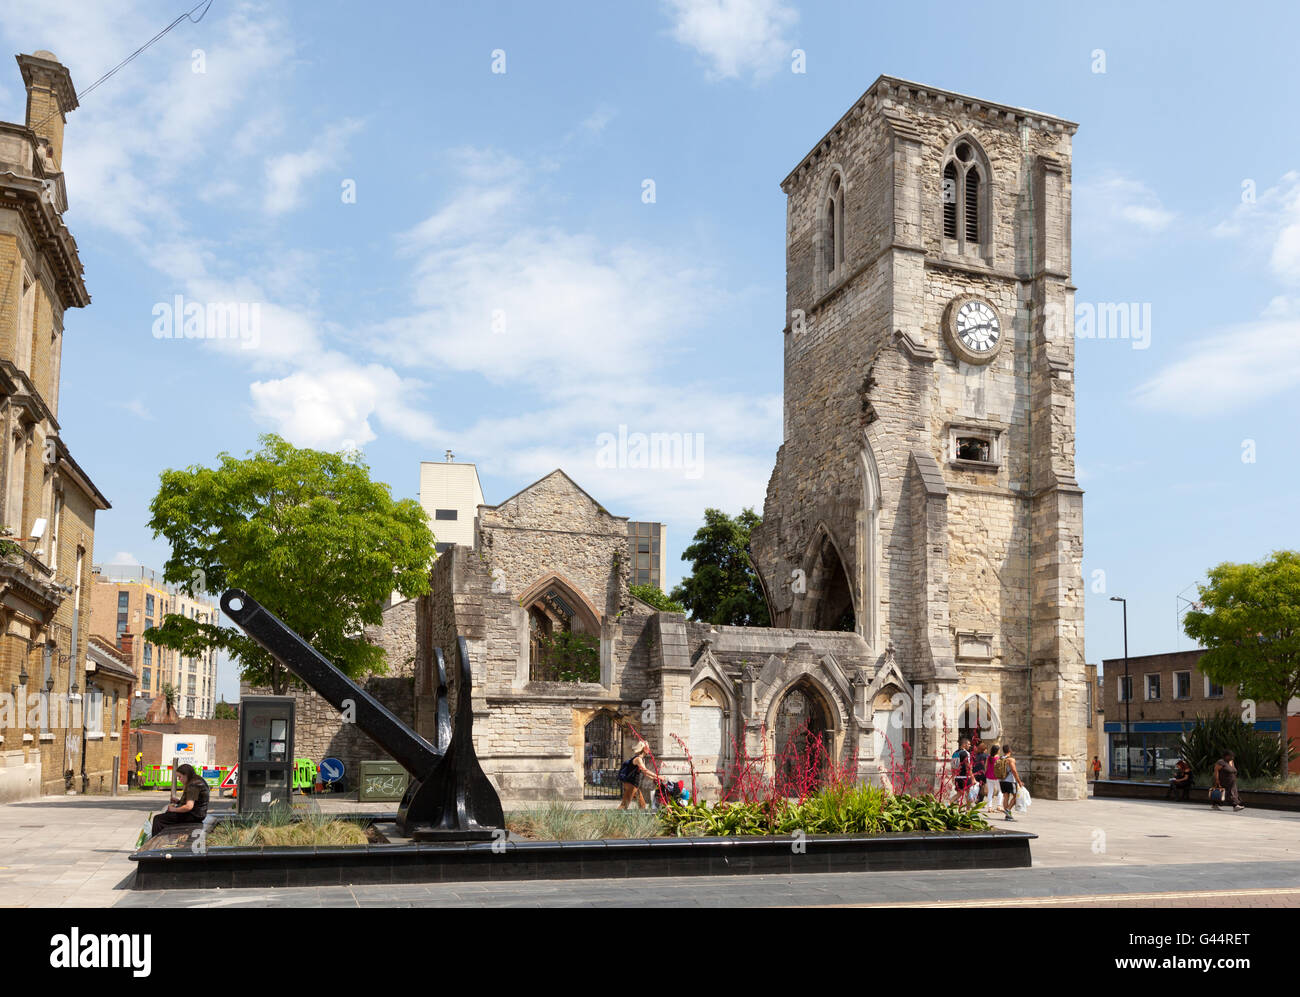 Holy Rood Church in Southampton, Hampshire, UK - Stock Image